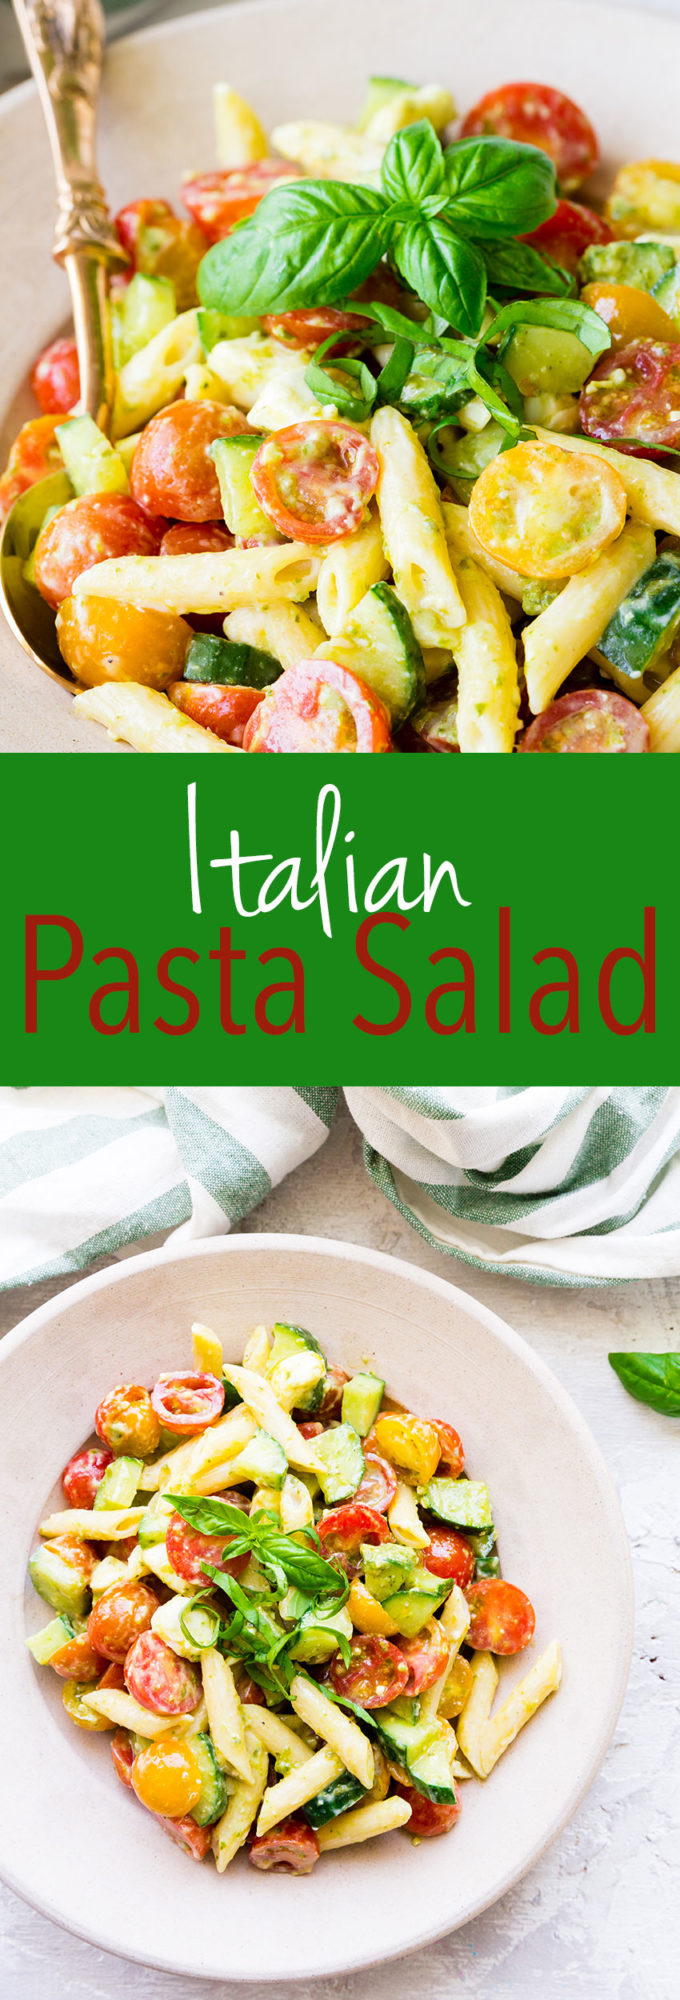 Serve hot or cold, this Italian pasta salad has a creamy Alfredo pesto sauce and all the delicious flavors you crave.